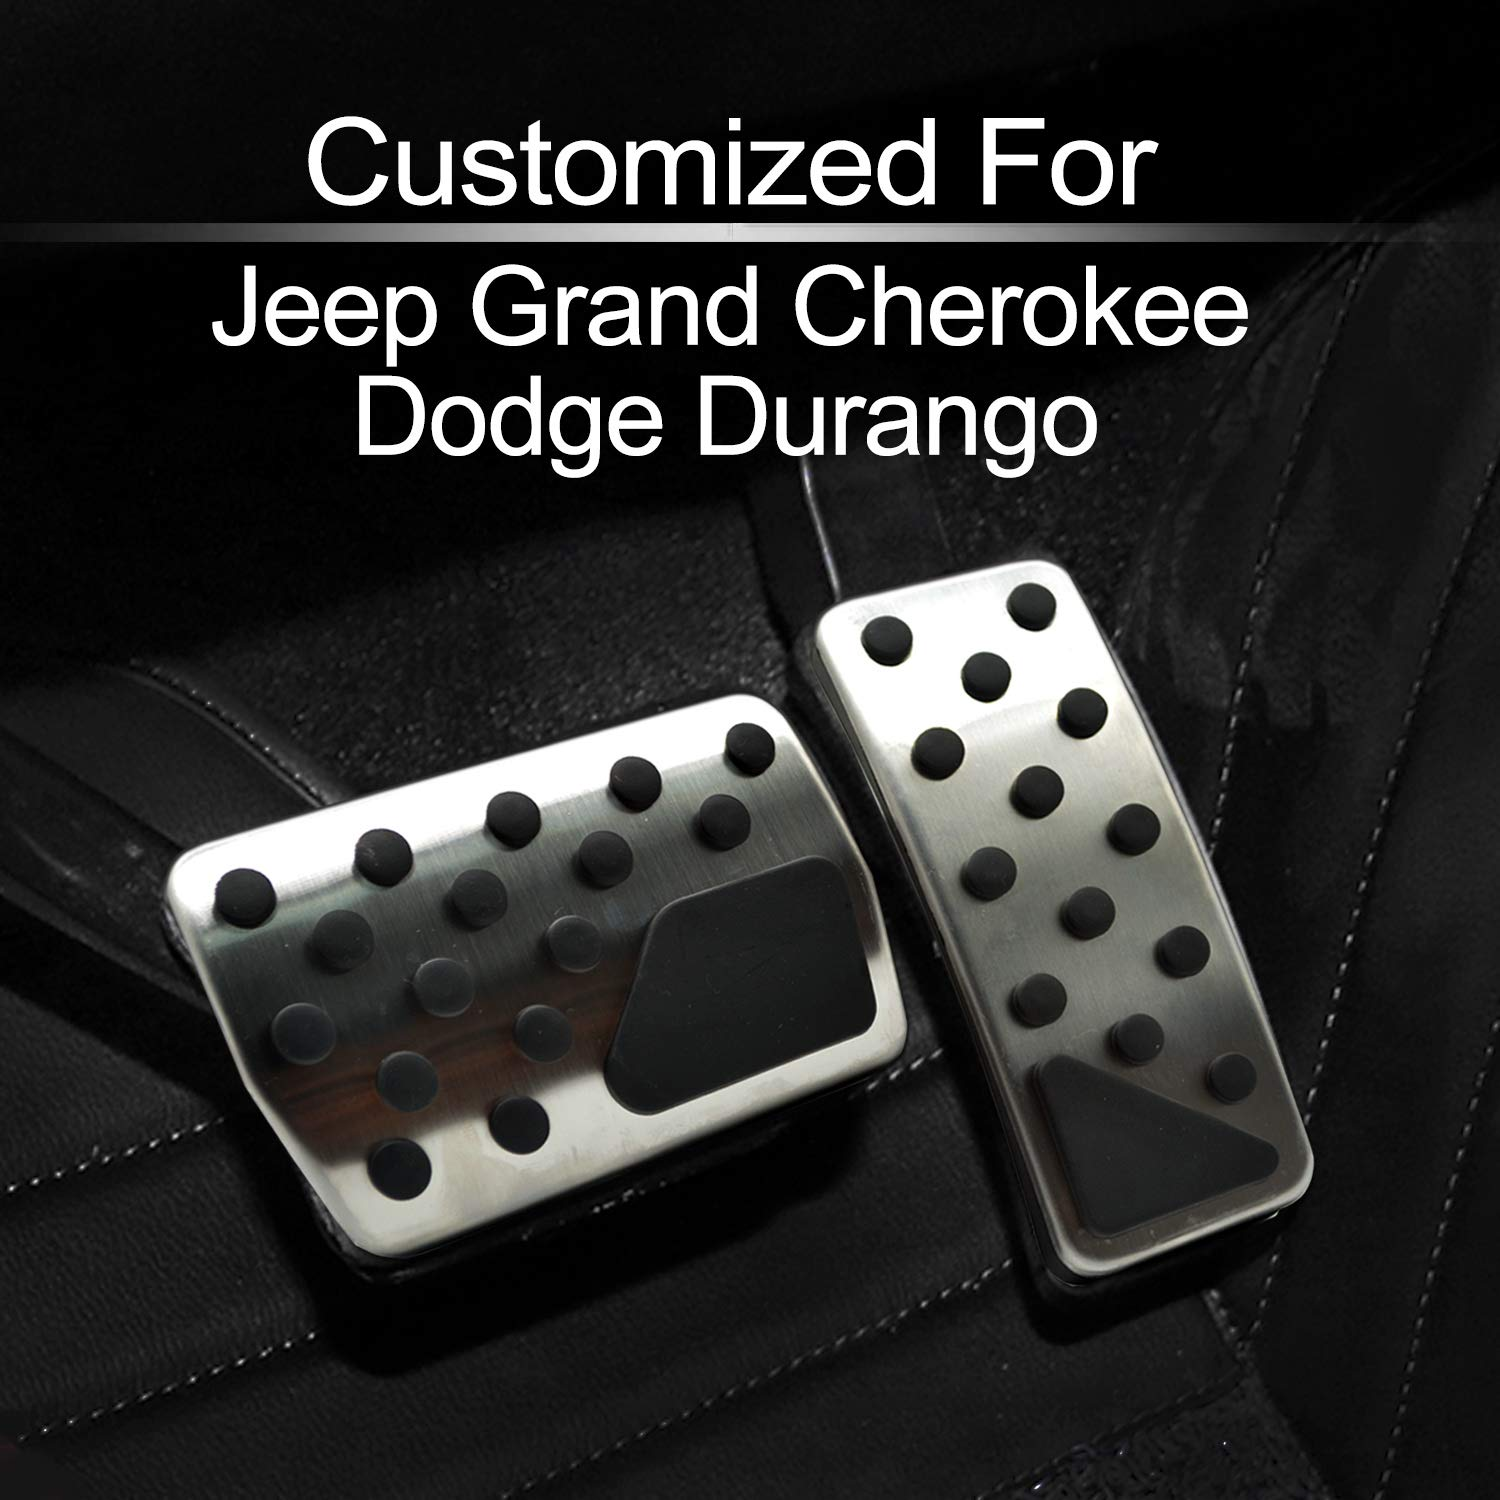 Gas and Brake Pedal Cover Compatible with fit for 2011-2018 Jeep Grand Cherokee Dodge Durango 82212055, by MECHCOS